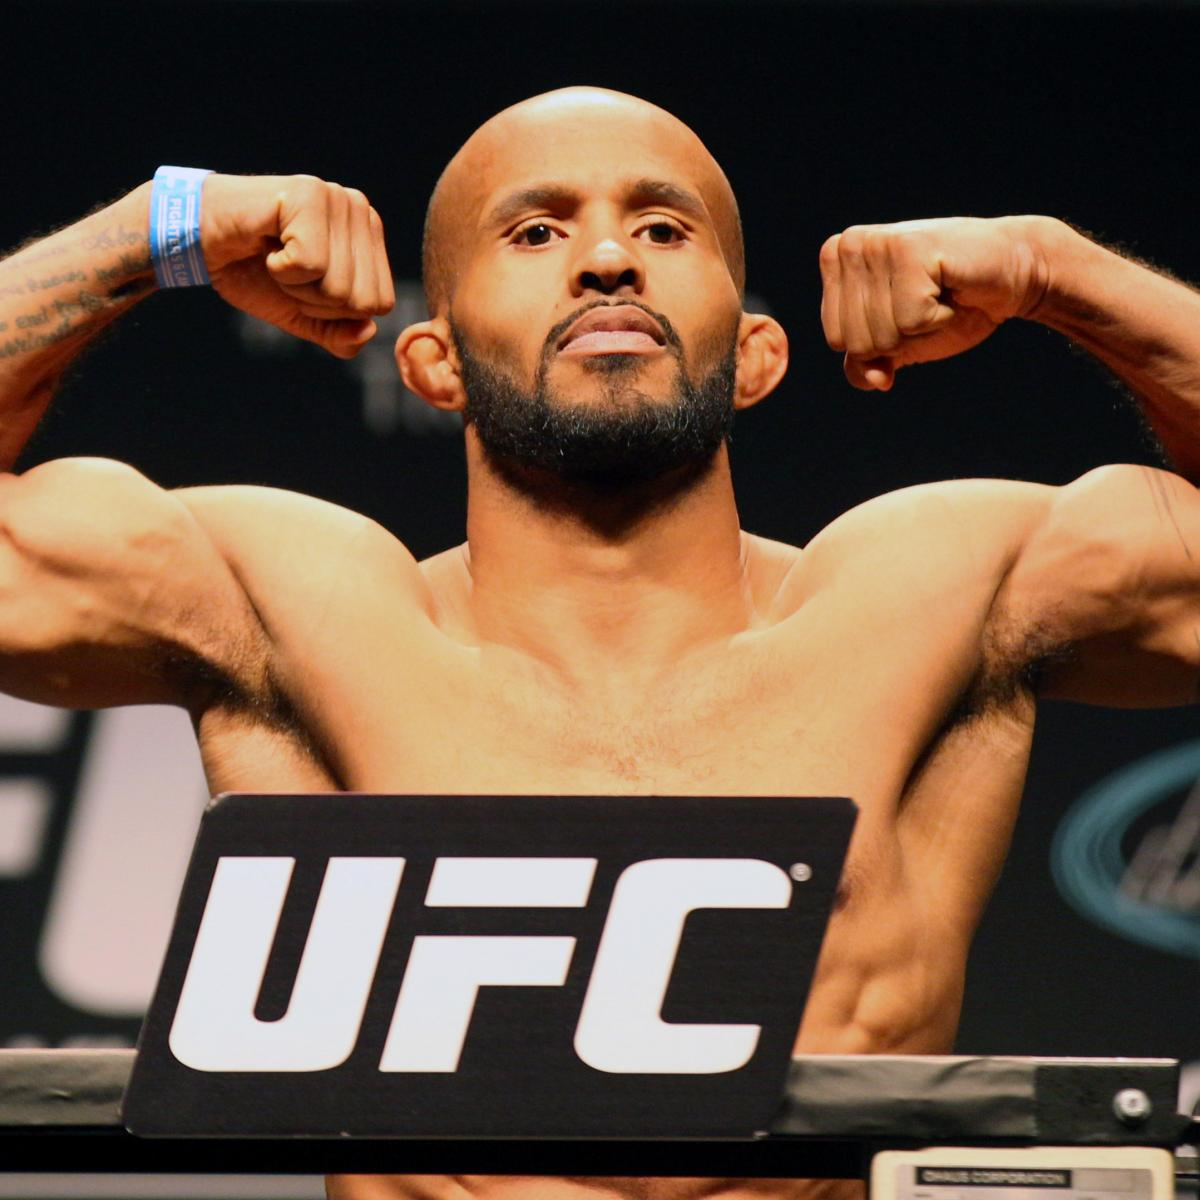 UFC 186 Results: Winners and Scorecards from Johnson vs. Horiguchi Fight CardUFC 186 Results: Winners and Scorecards from Johnson vs. Horiguchi Fight CardDemetrious Johnson vs. Kyoji HoriguchiRampage Jackson vs. Fabio MaldonadoMichael Bisping vs. C.B. DollawayJohn Makdessi vs. Shane CampbellYves Jabouin vs. Thomas Almeida